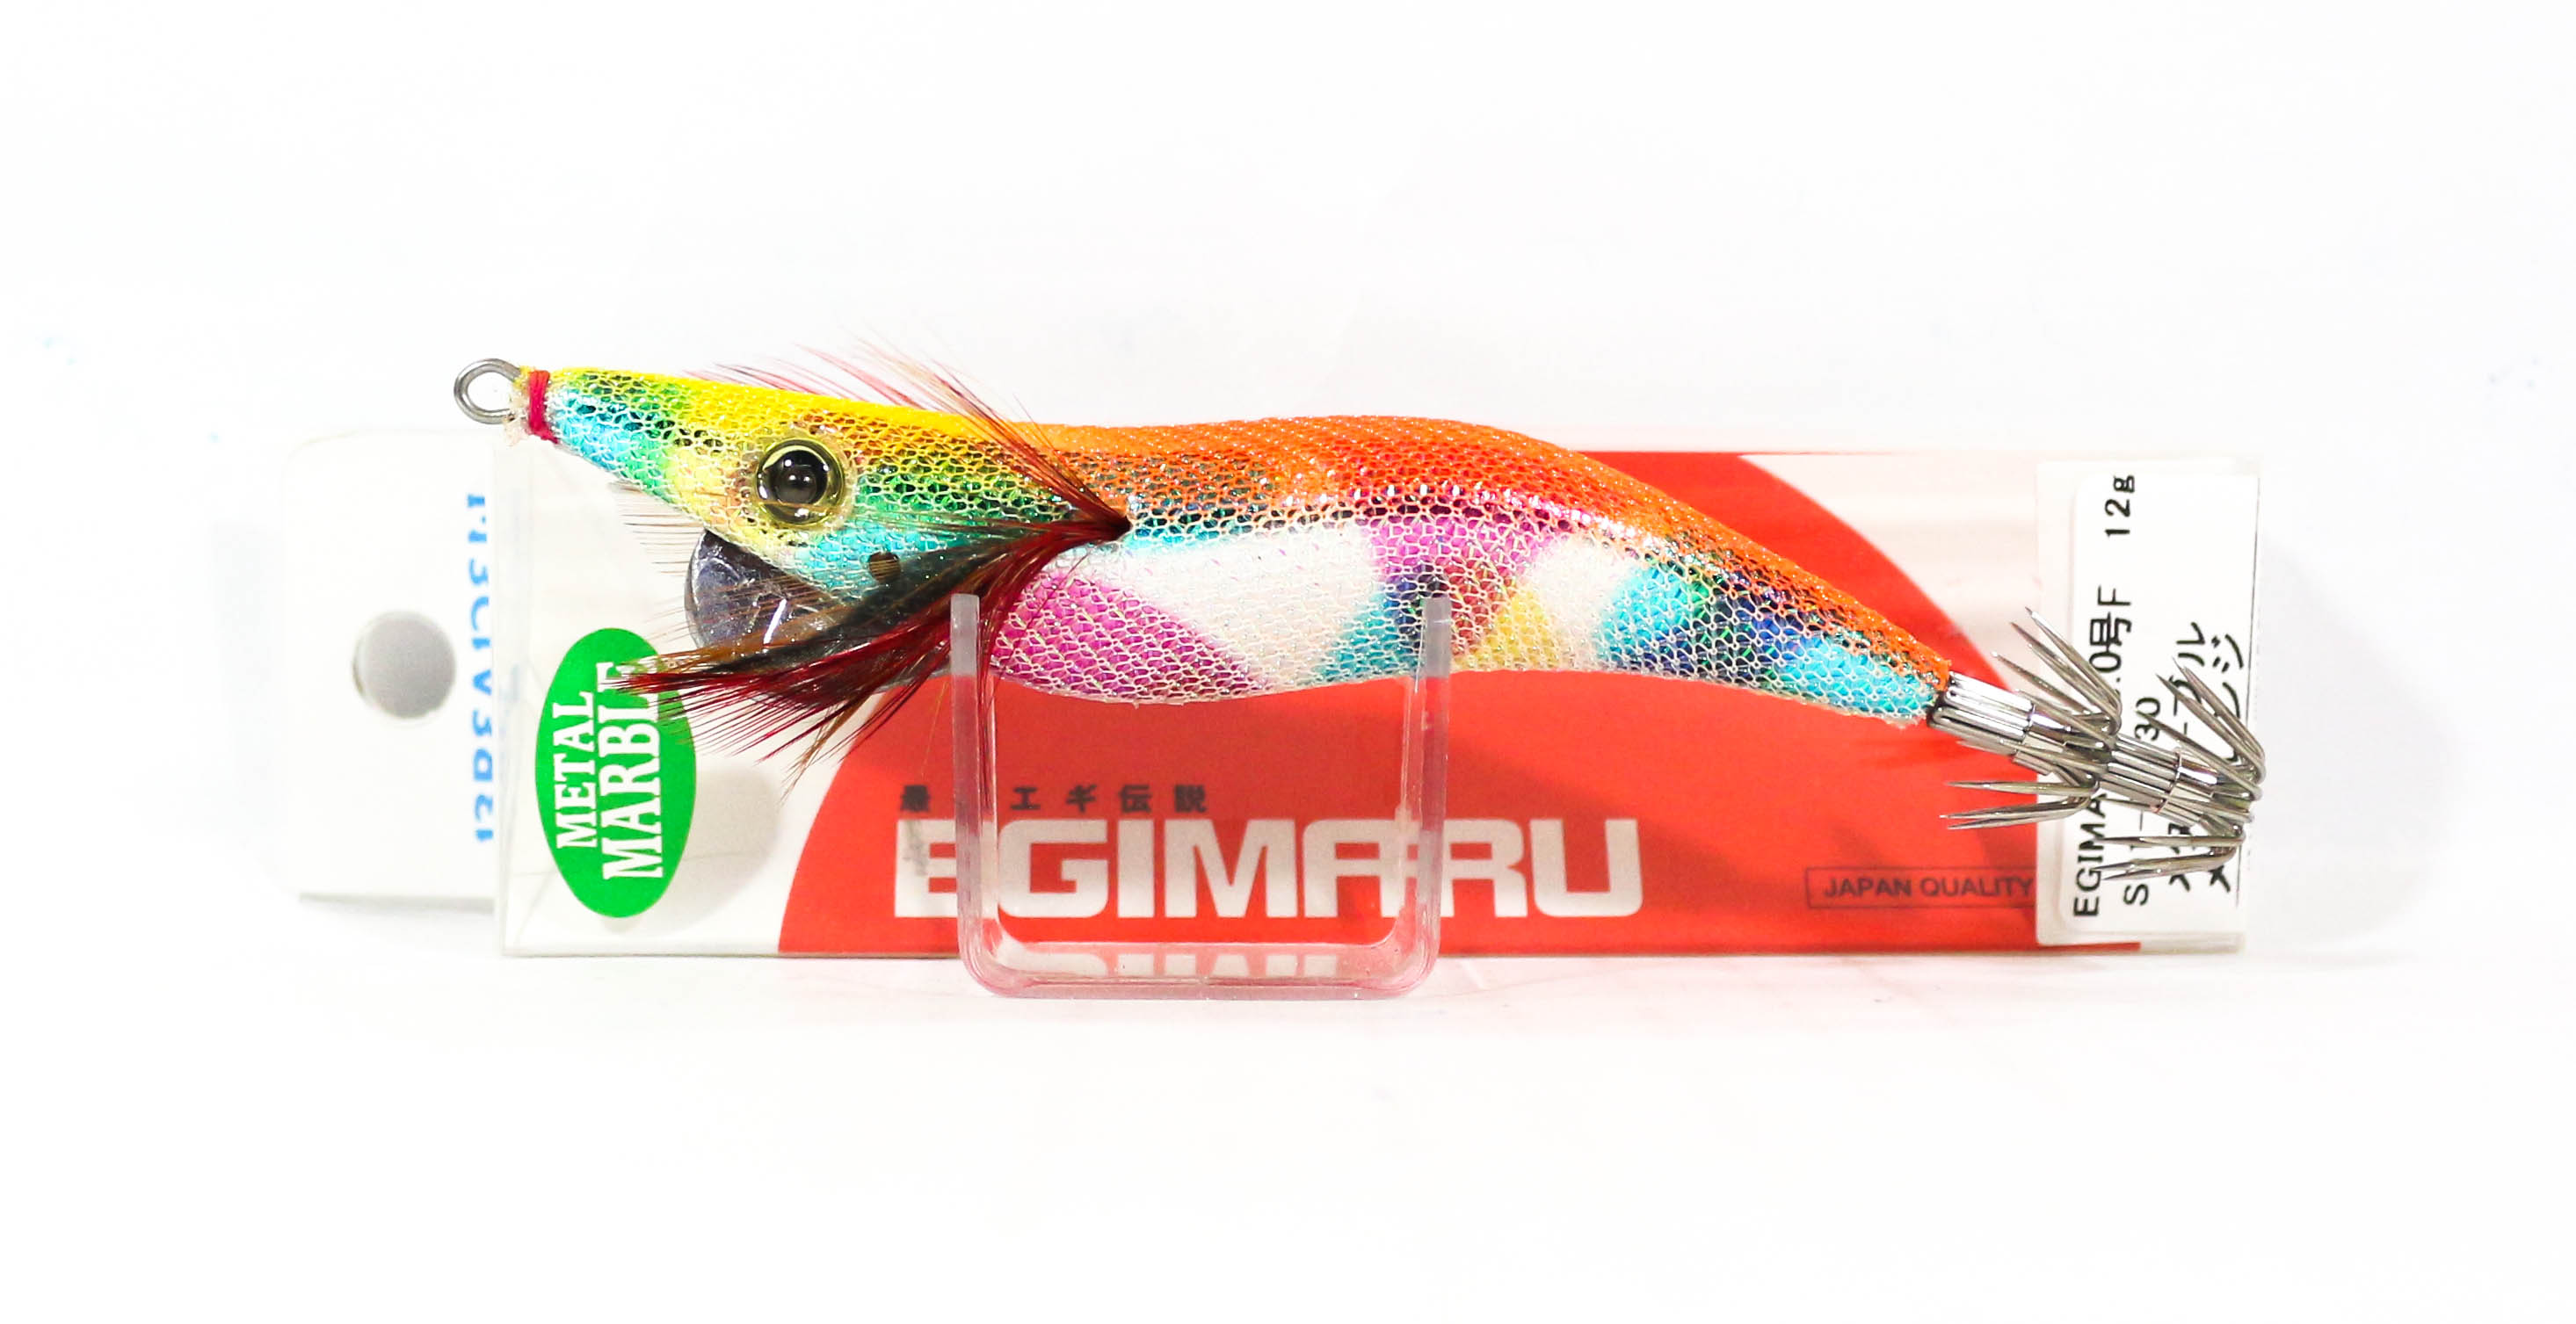 Breaden Egimaru Squid Jig Sinking Lure 3.0F S01-DO30 (5063)